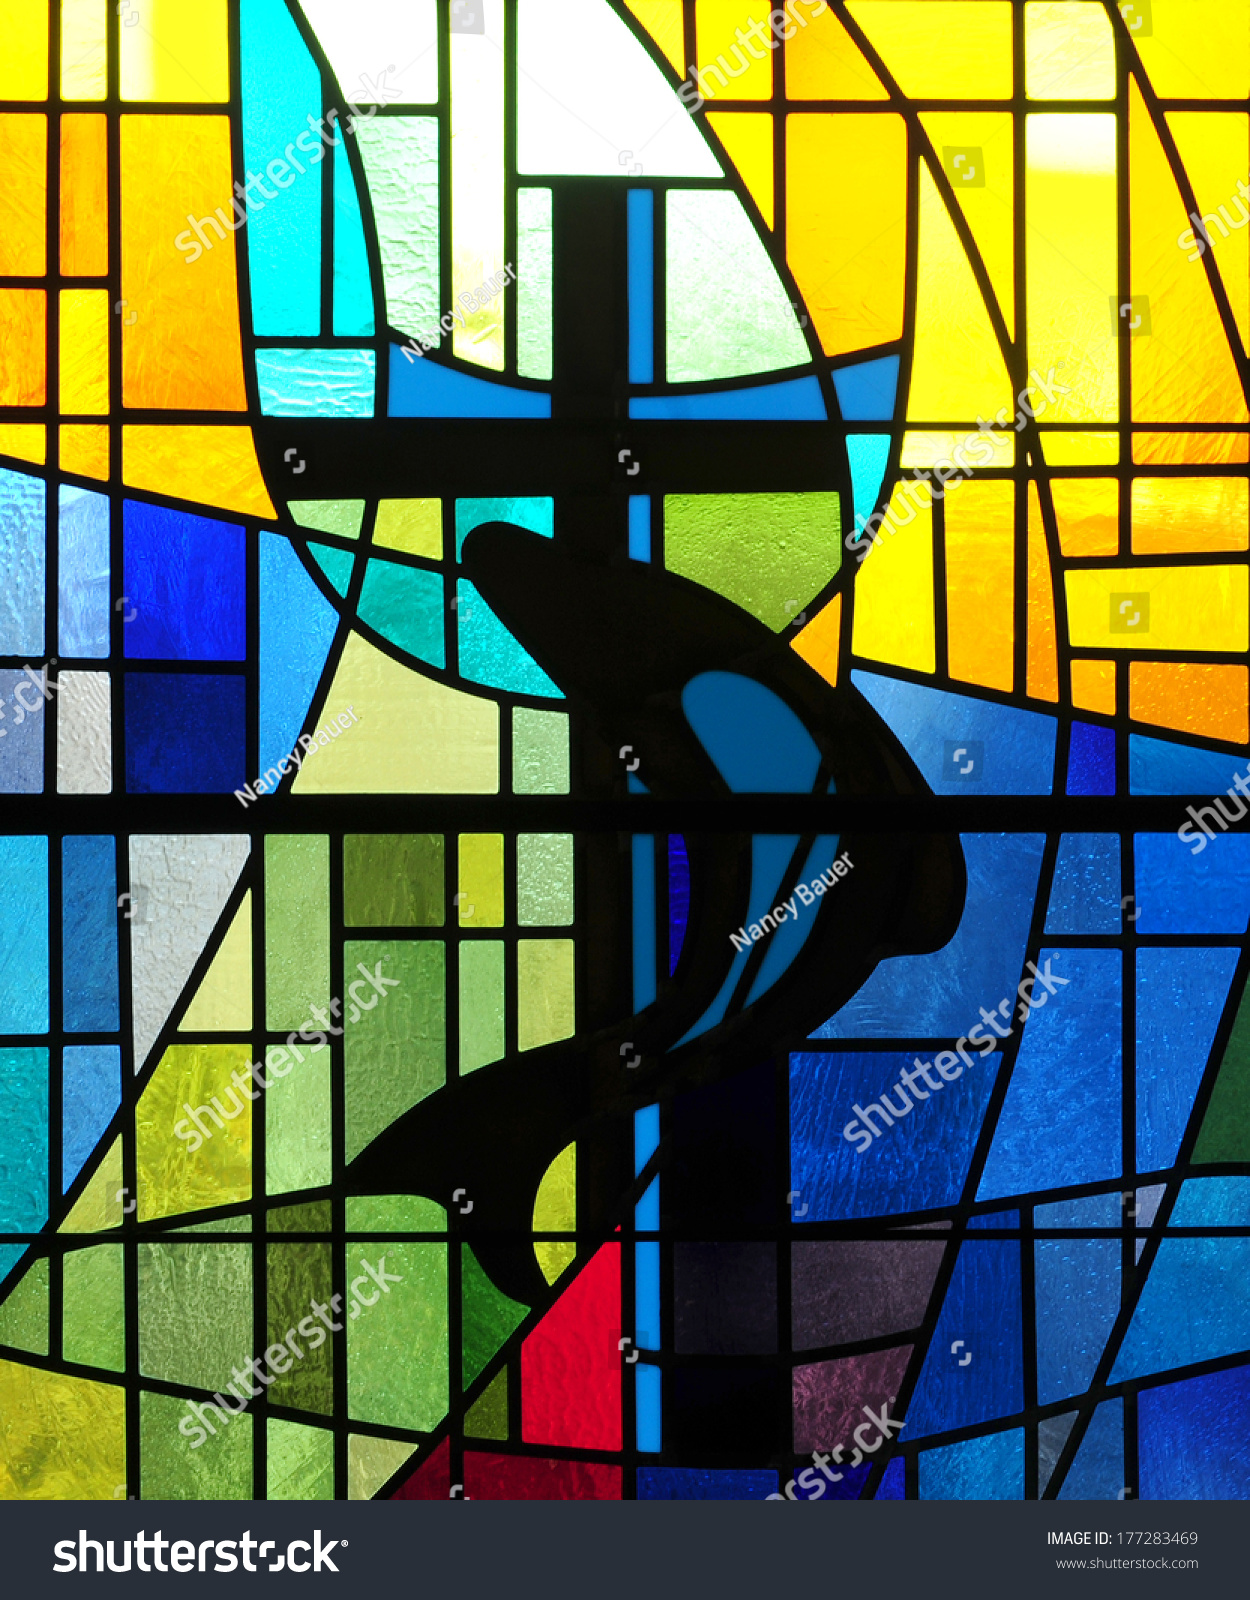 Modern Stained Glass Window Depicting Christian Cross With